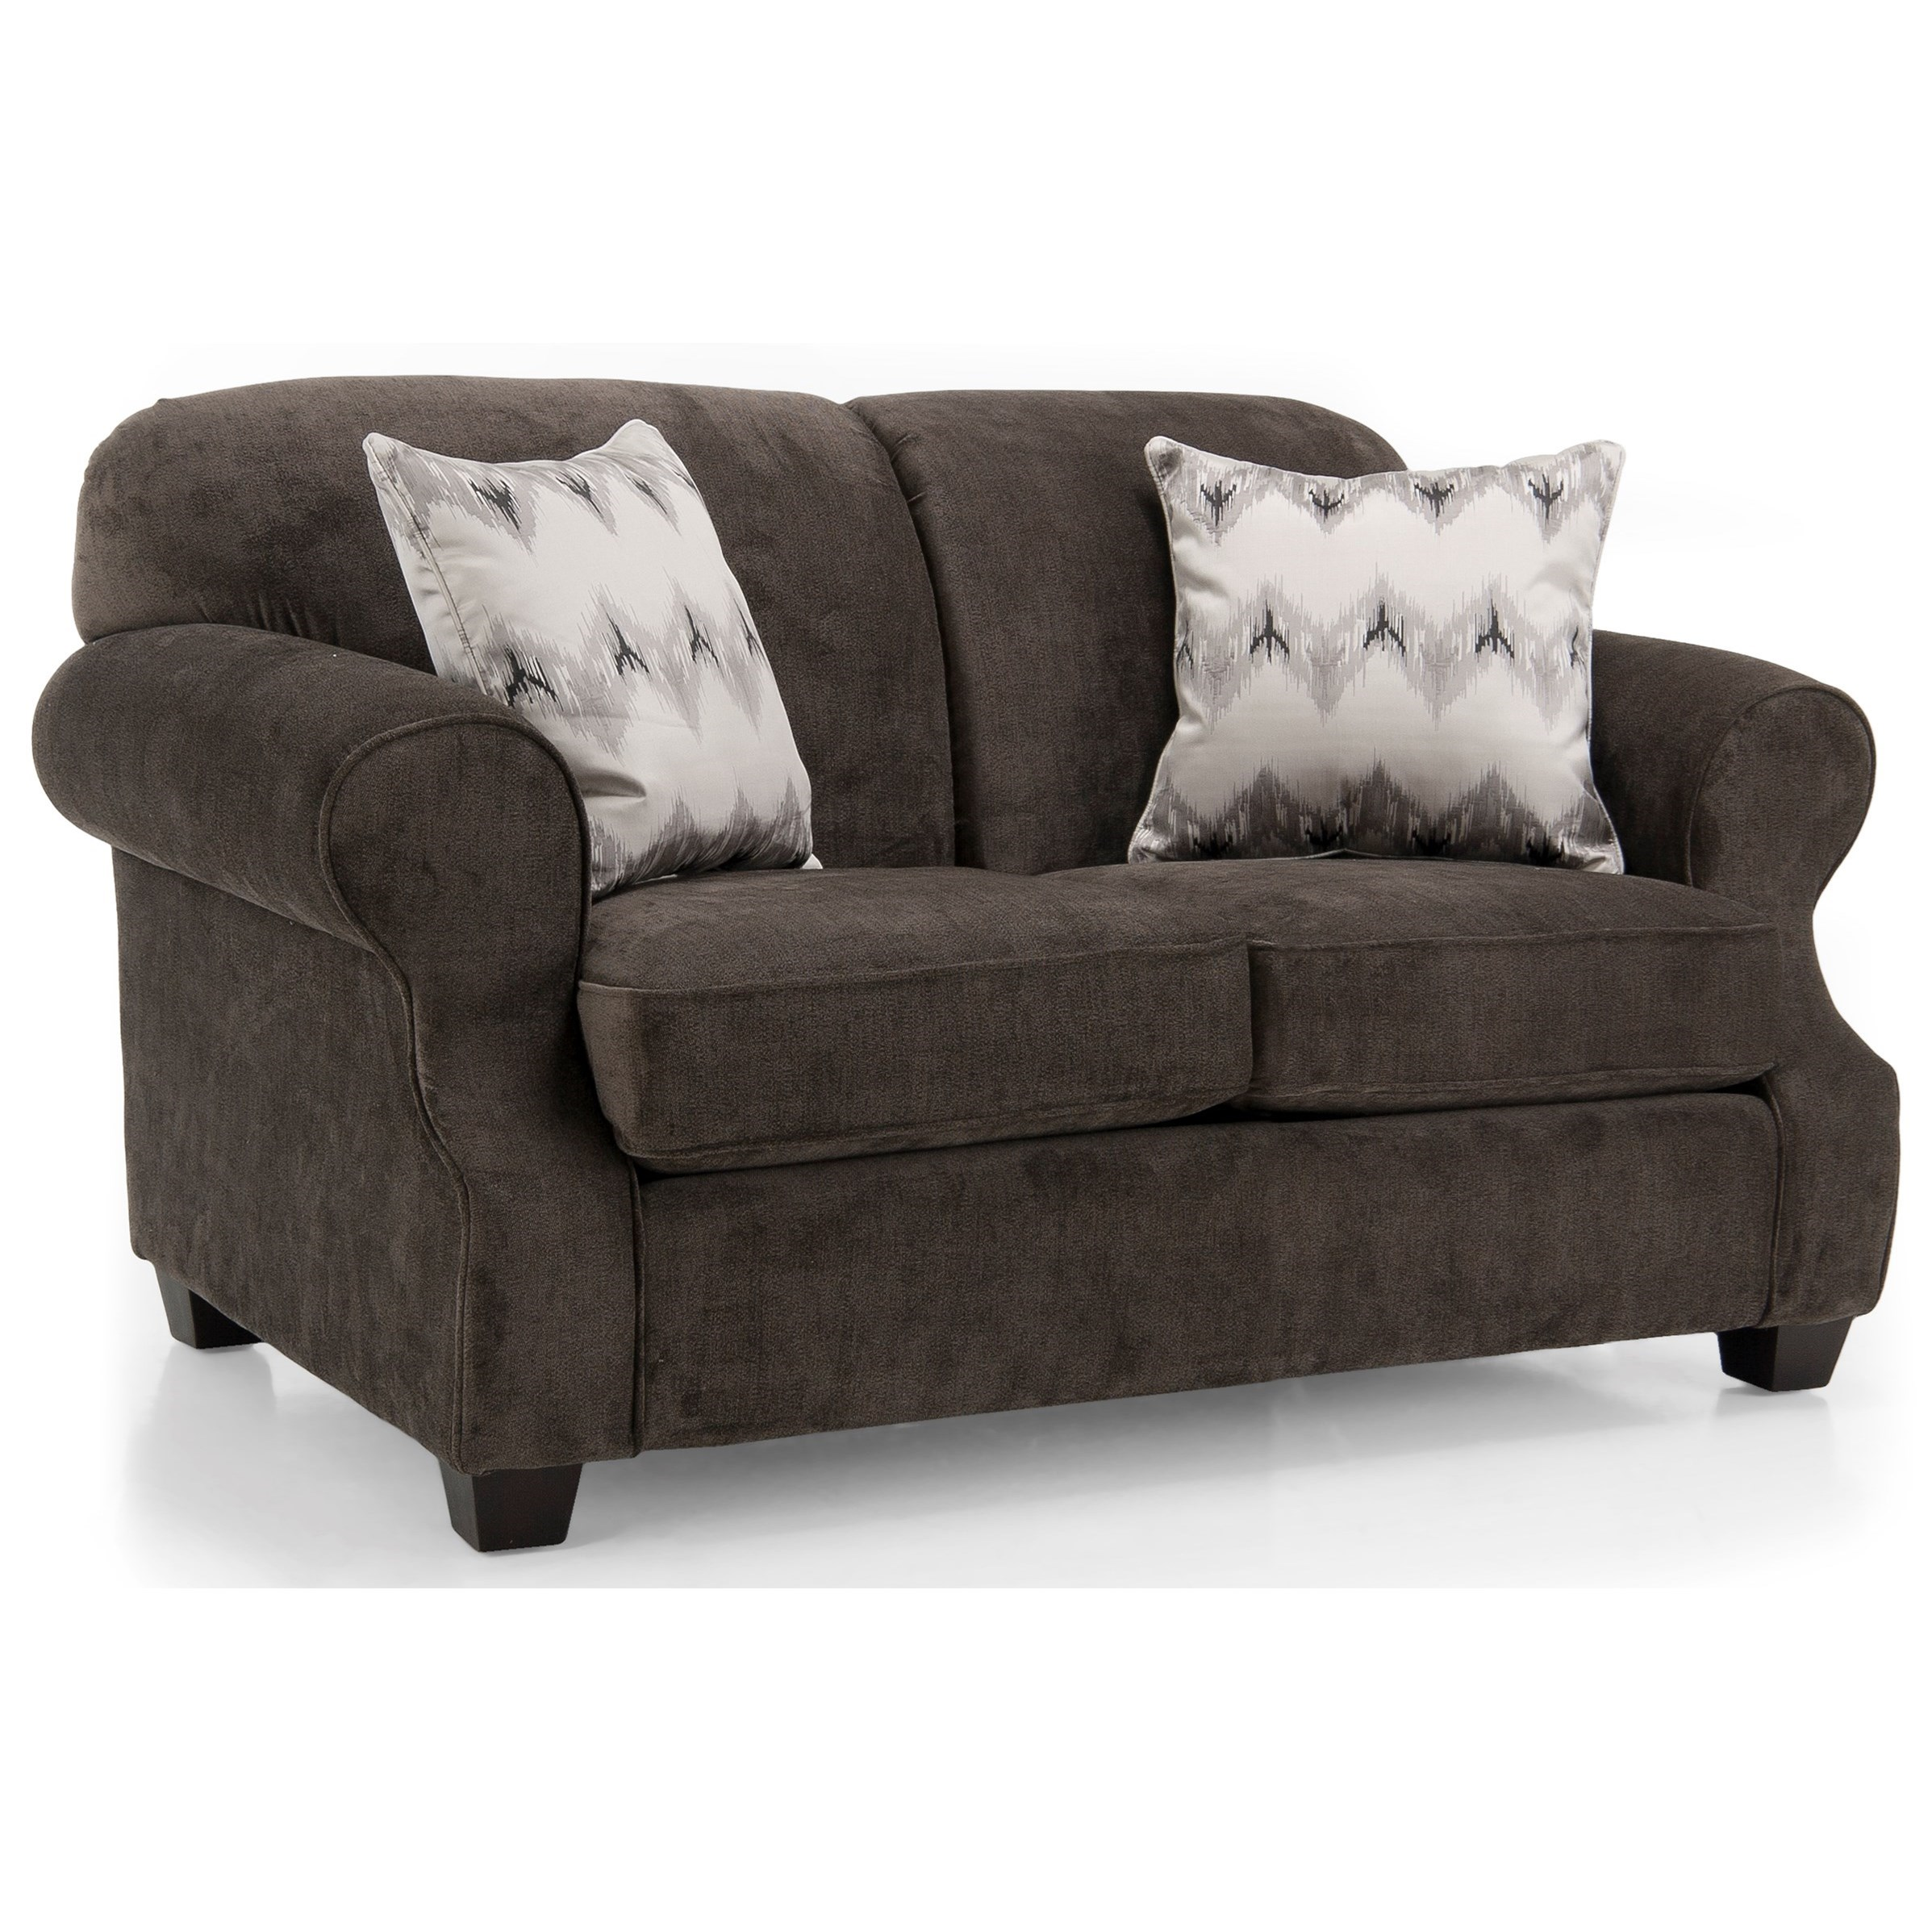 2000 Loveseat by Taelor Designs at Bennett's Furniture and Mattresses